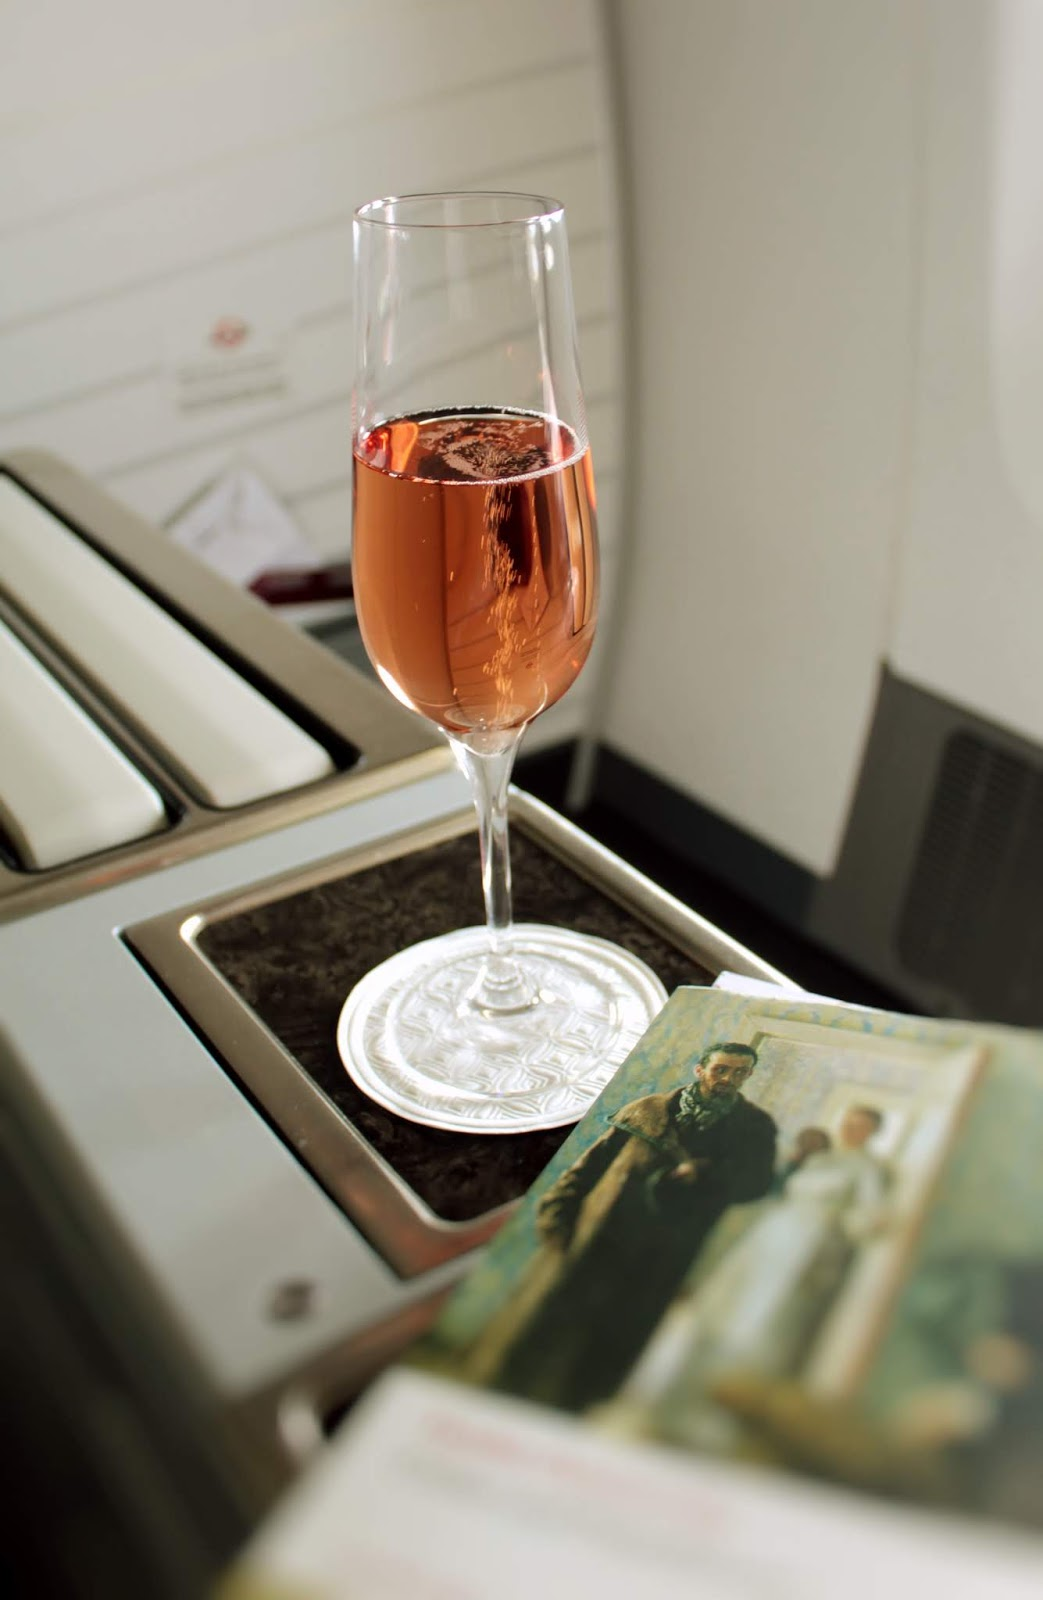 Champagne and Wine Service on Qatar Airways Business Class 777-300ER